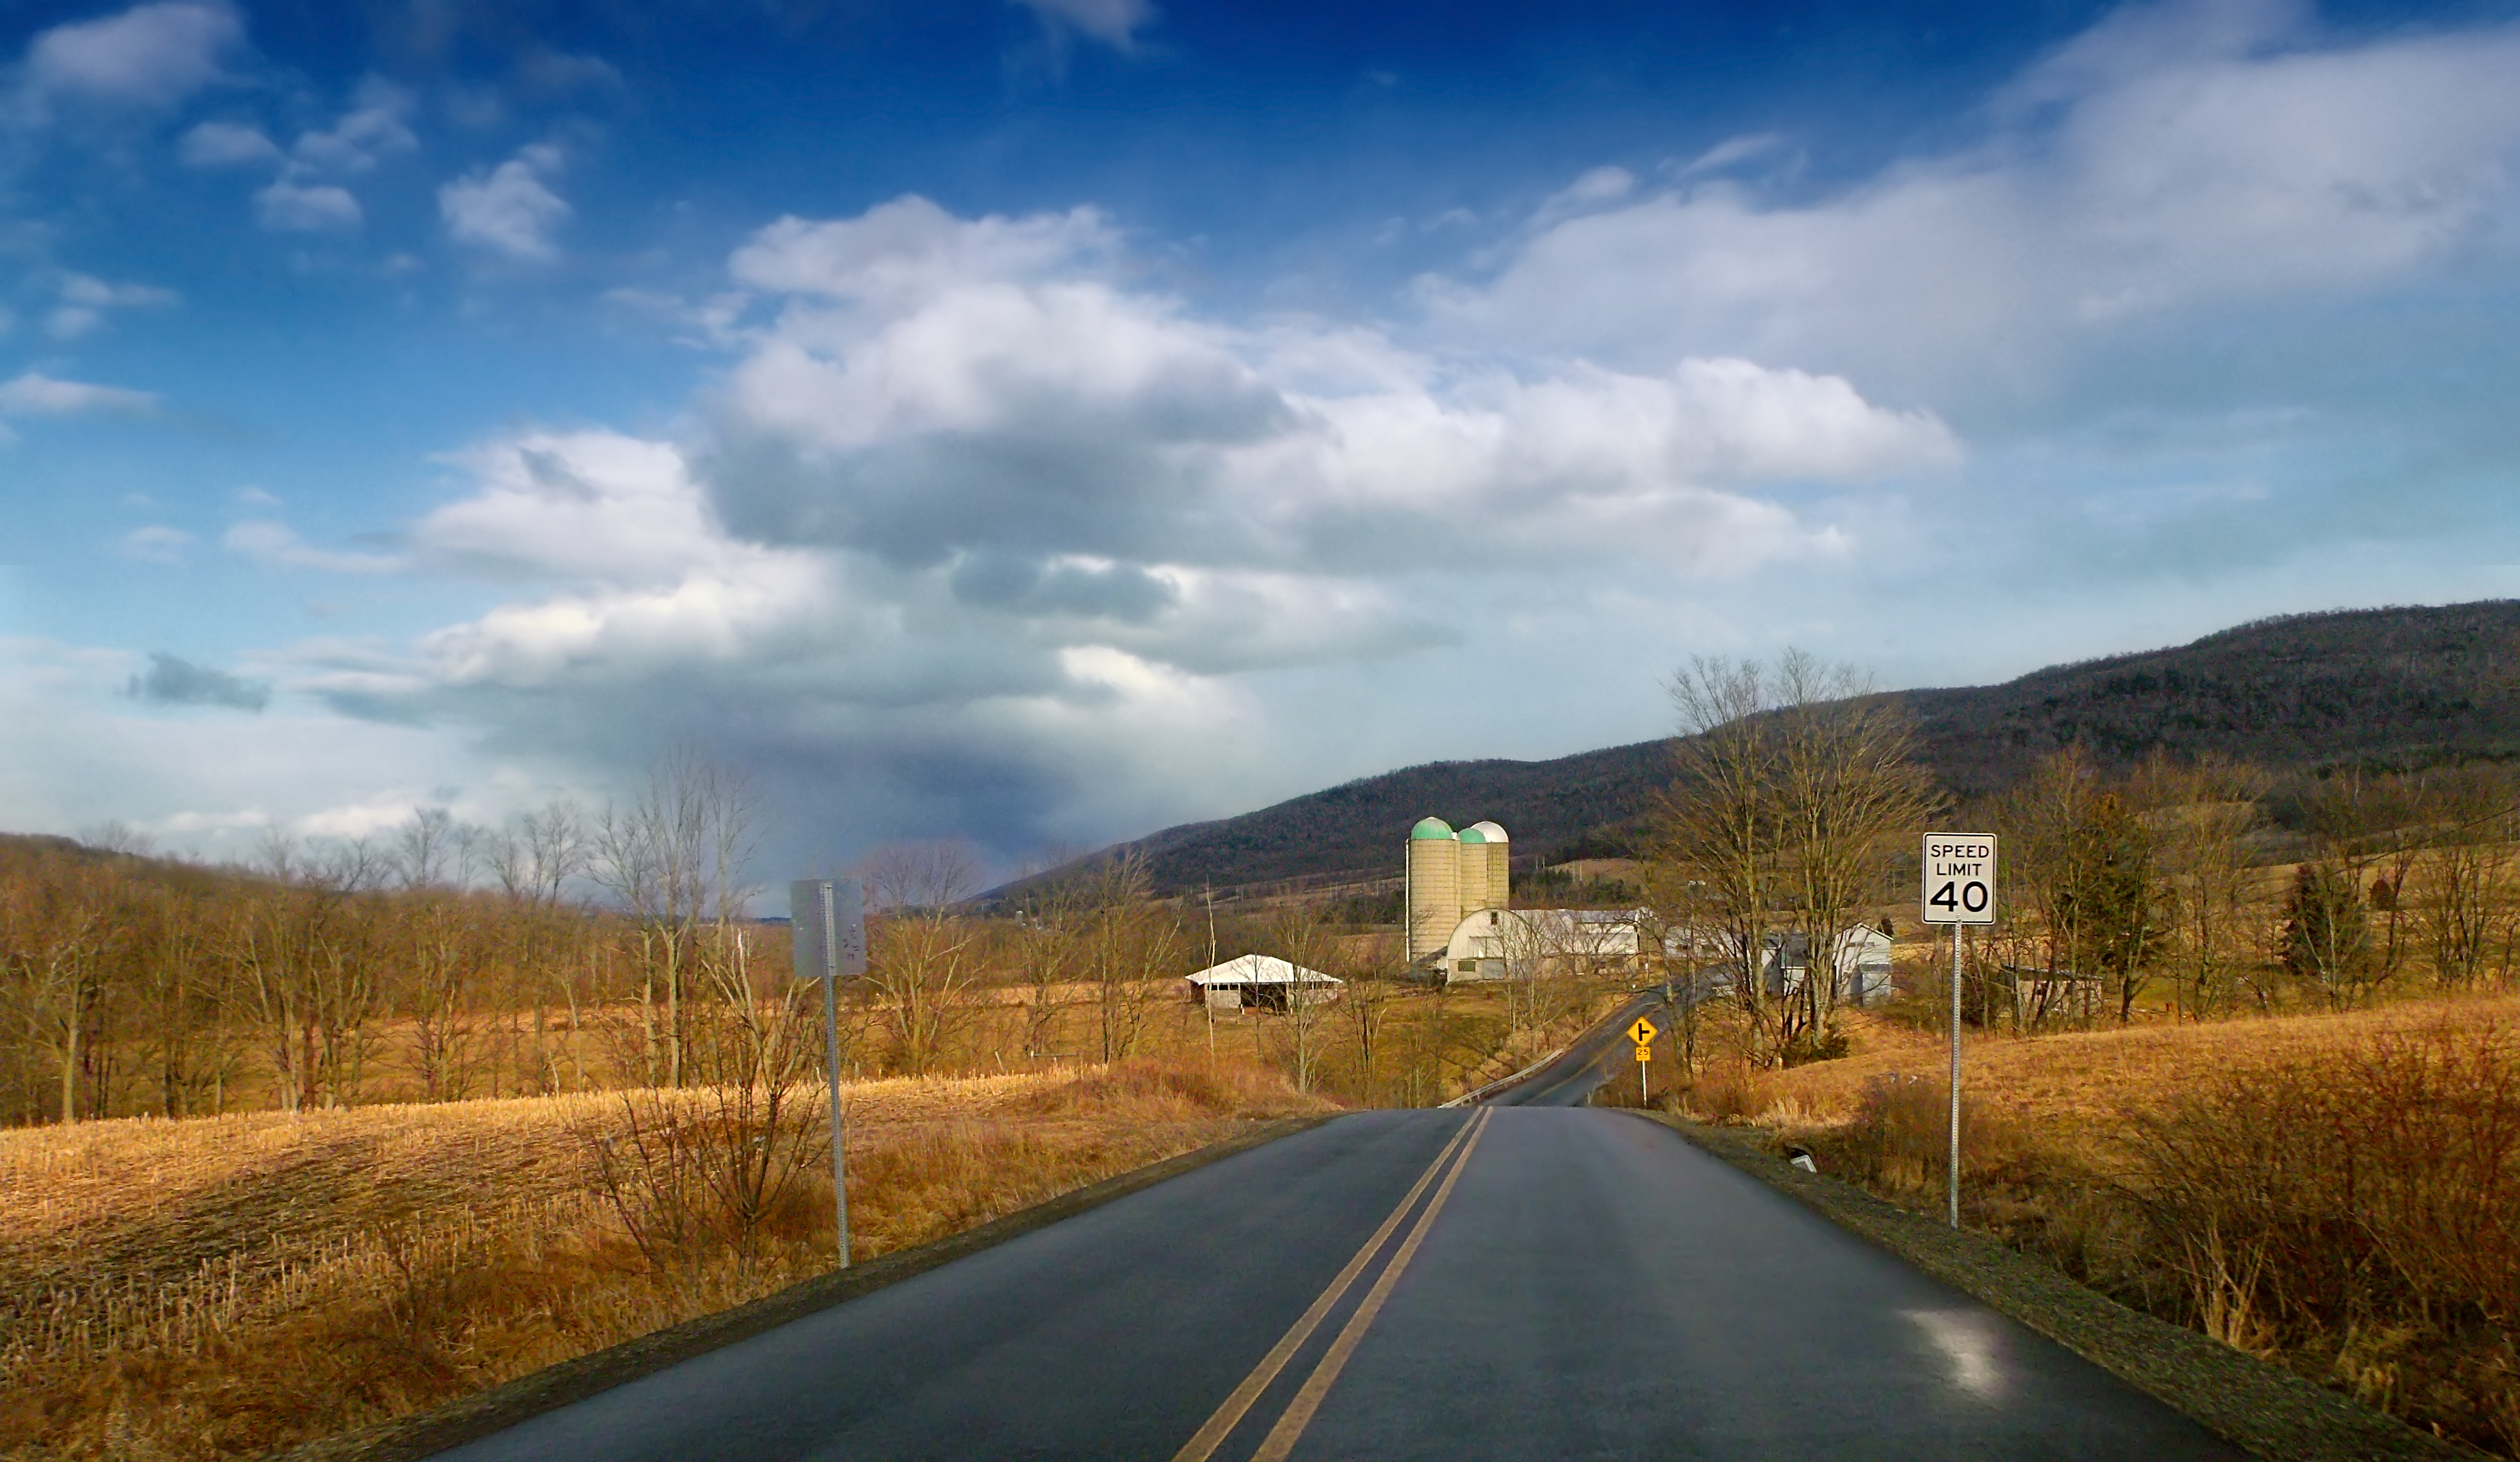 File:Flickr - Nicholas T - Country Road.jpg - Wikimedia Commons